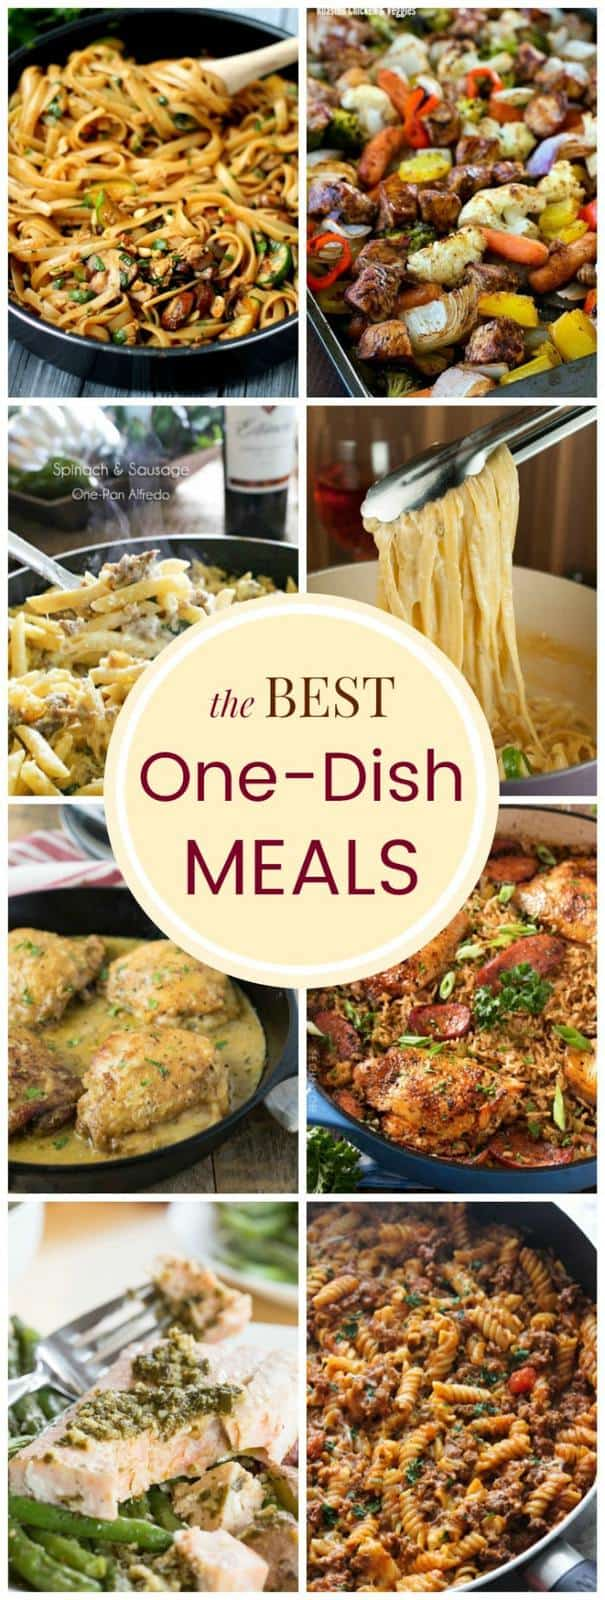 The Best One-Dish Meals are quick and easy dinner recipes for bust days. One pot pasta dishes, skillet meals, sheet pan dinners and more!